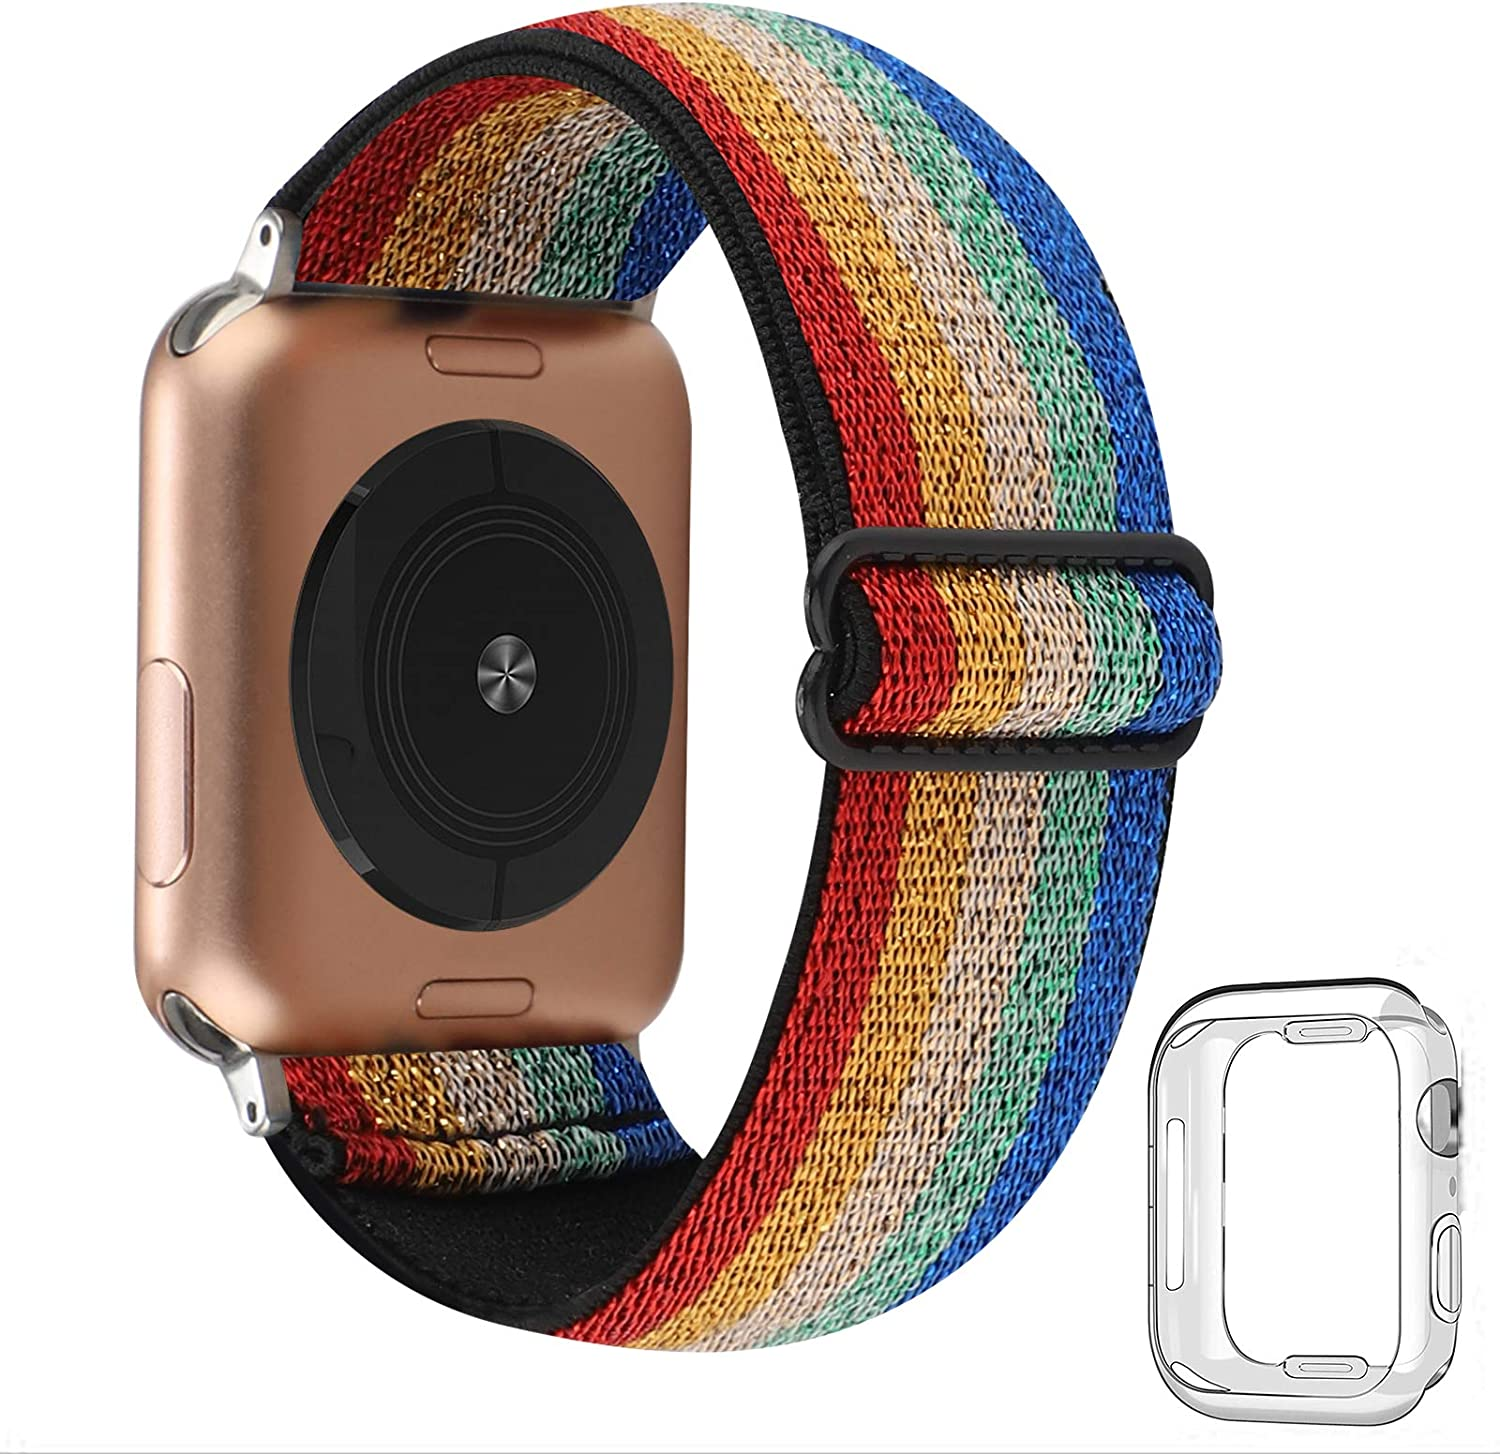 Adjustable Stretchy Solo Loop Nylon Strap Compatible with Apple Watch Elastic Band 38mm 40mm iWatch Series SE/6/5/4/3/2/1 (Colorful Stripe with Series 6/5/4 Clear Case, 38mm/40mm)